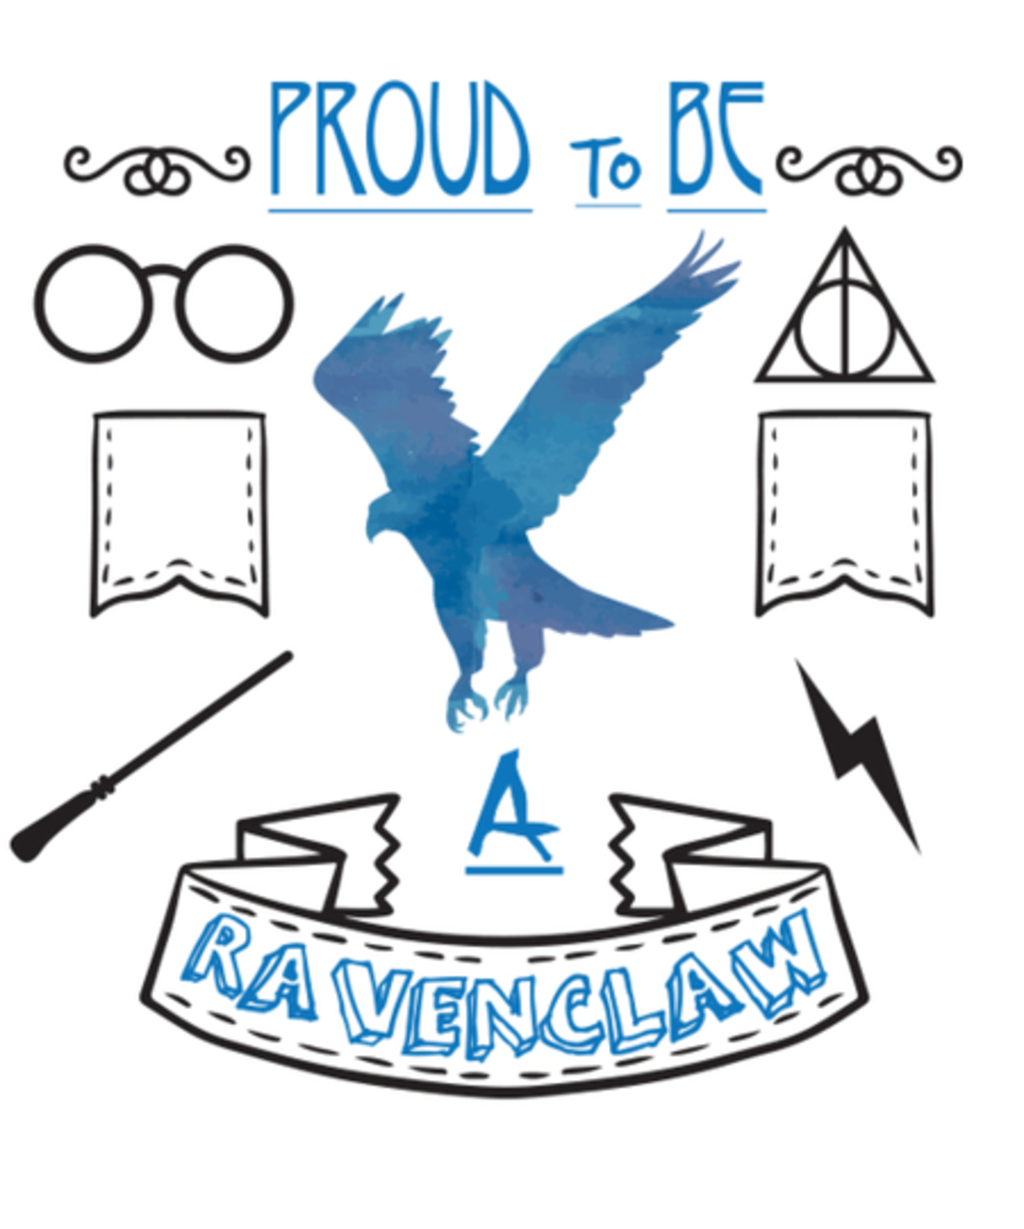 Qwertee: Proud to be a Ravenclaw